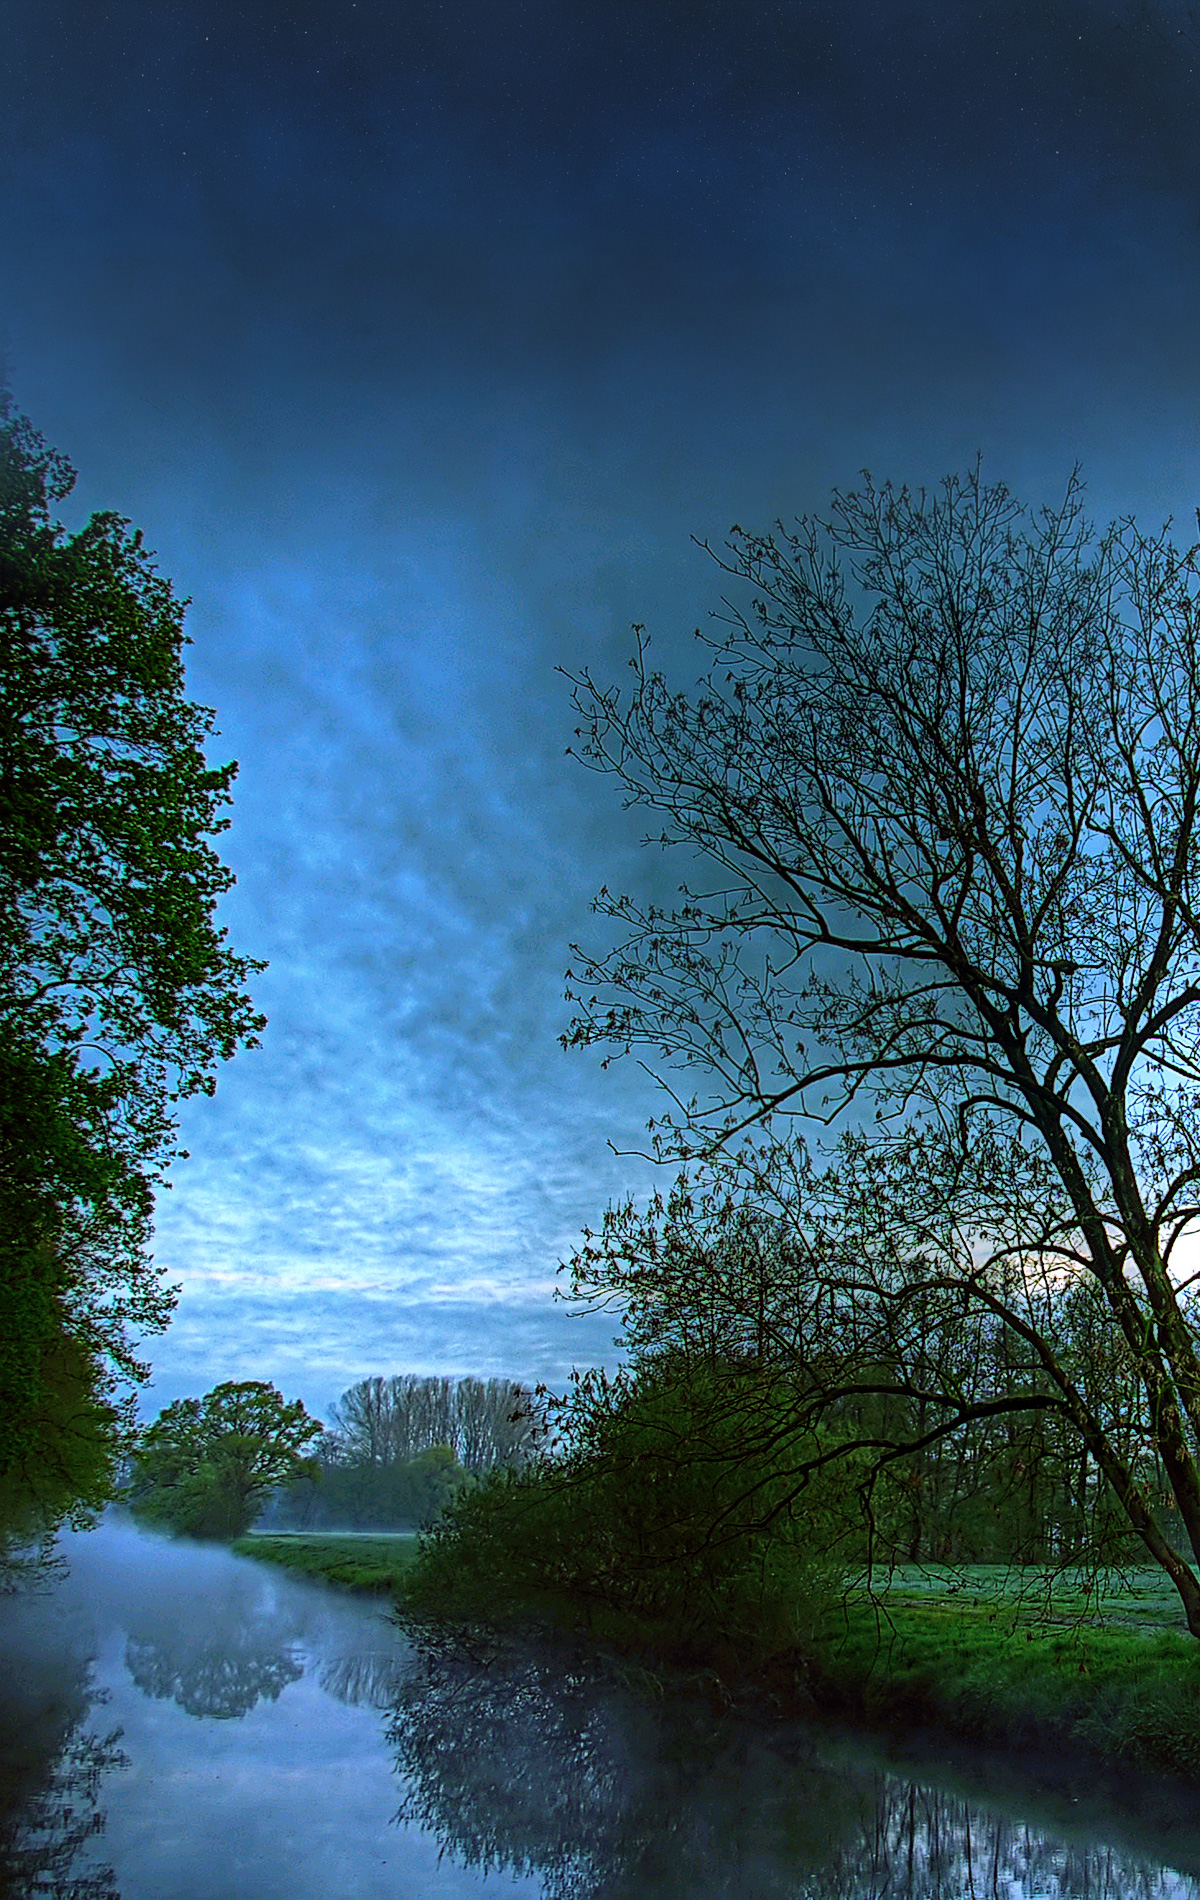 Tree-lined river at sunset under blue sky and clouds portrait photo